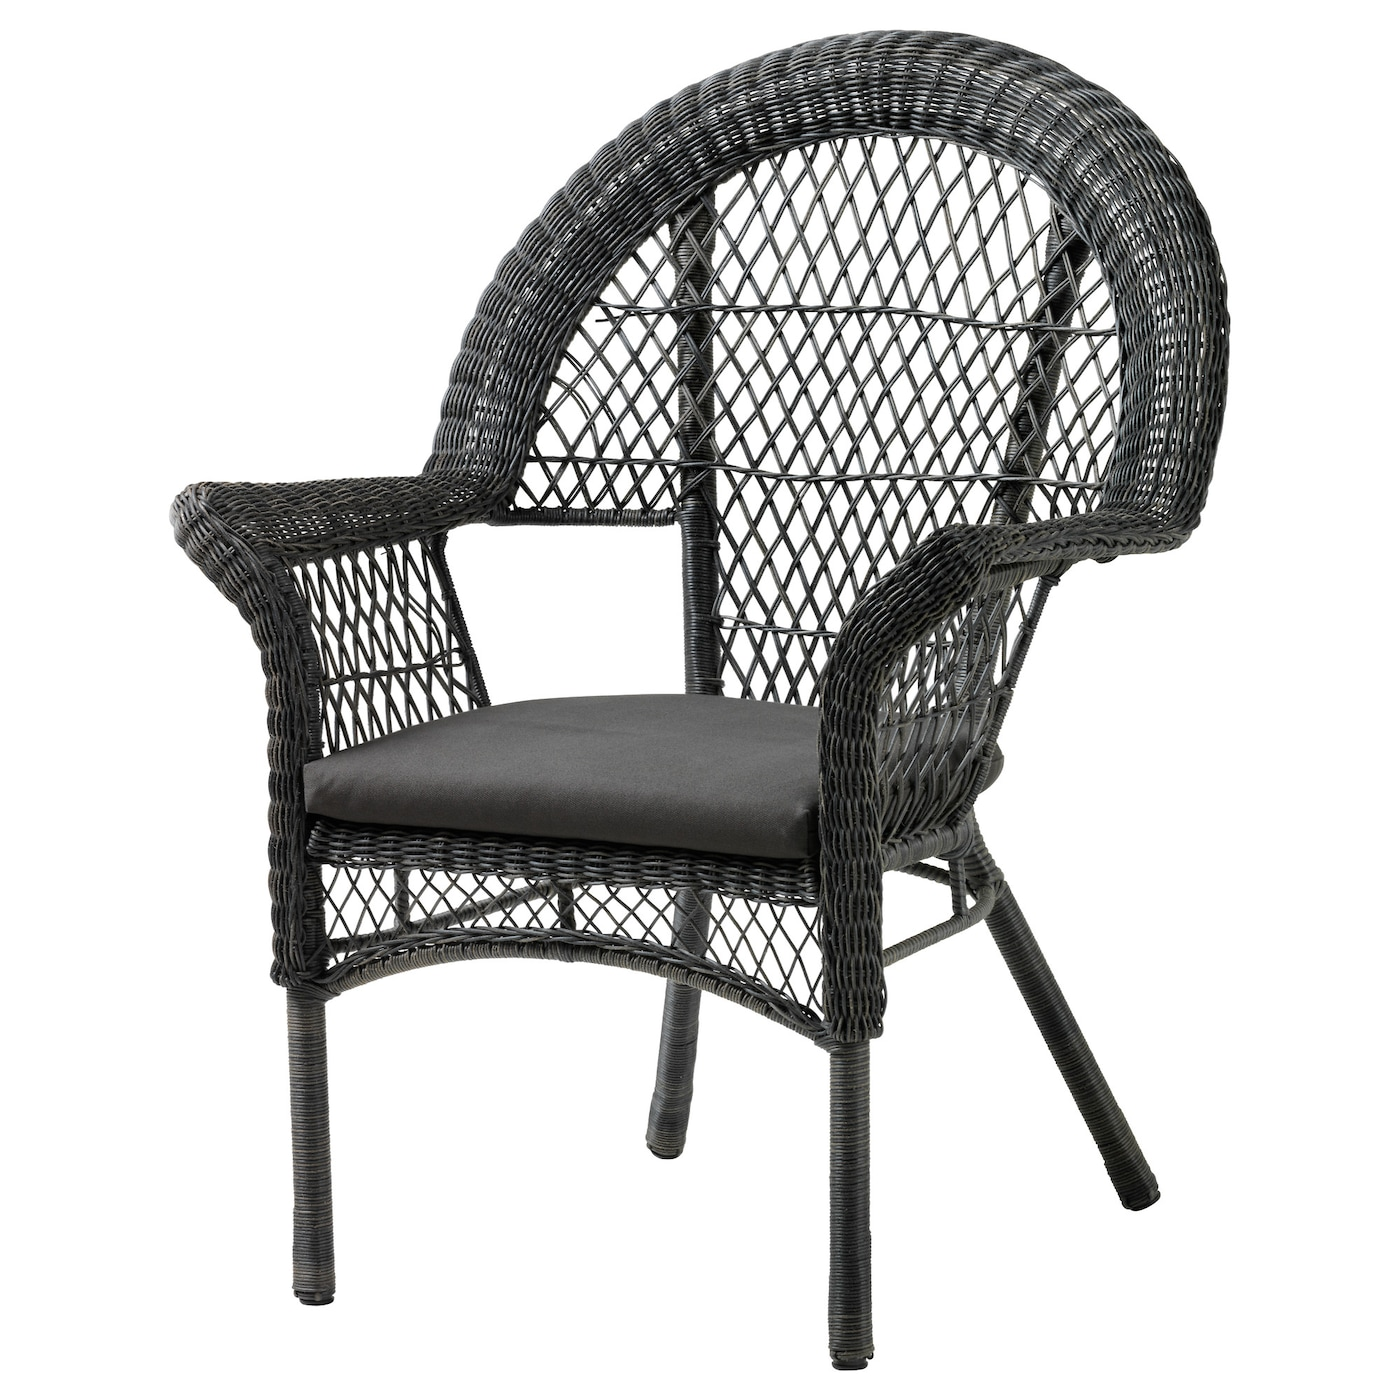 IKEA LÄCKÖ armchair with pad, outdoor